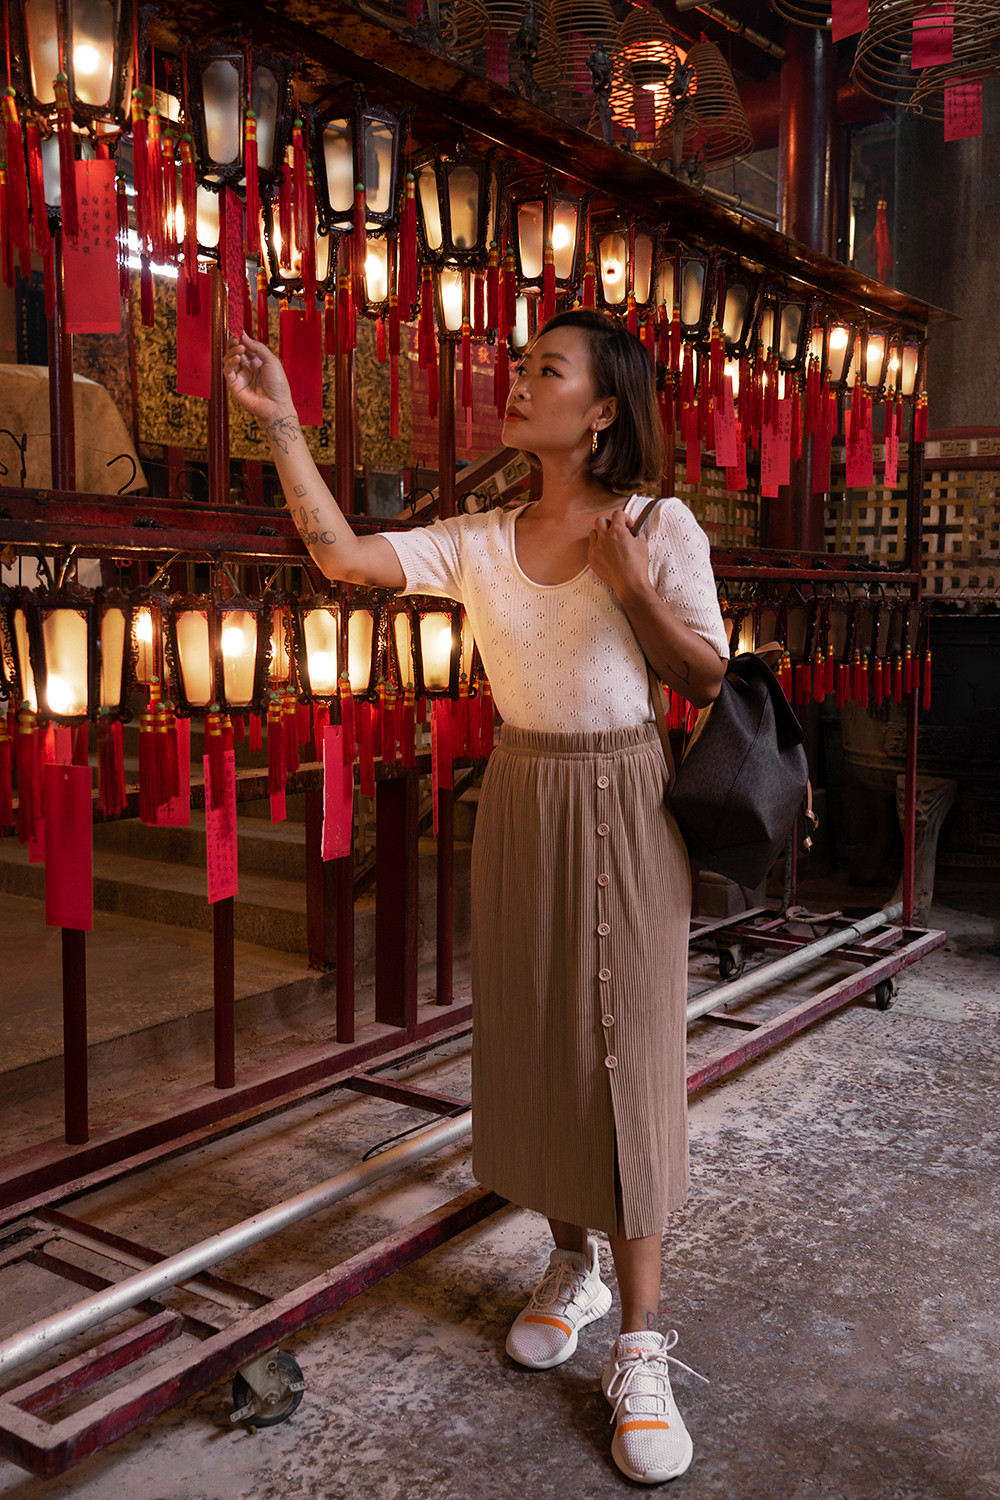 13hongkong-manmotemple-lanterns-travel